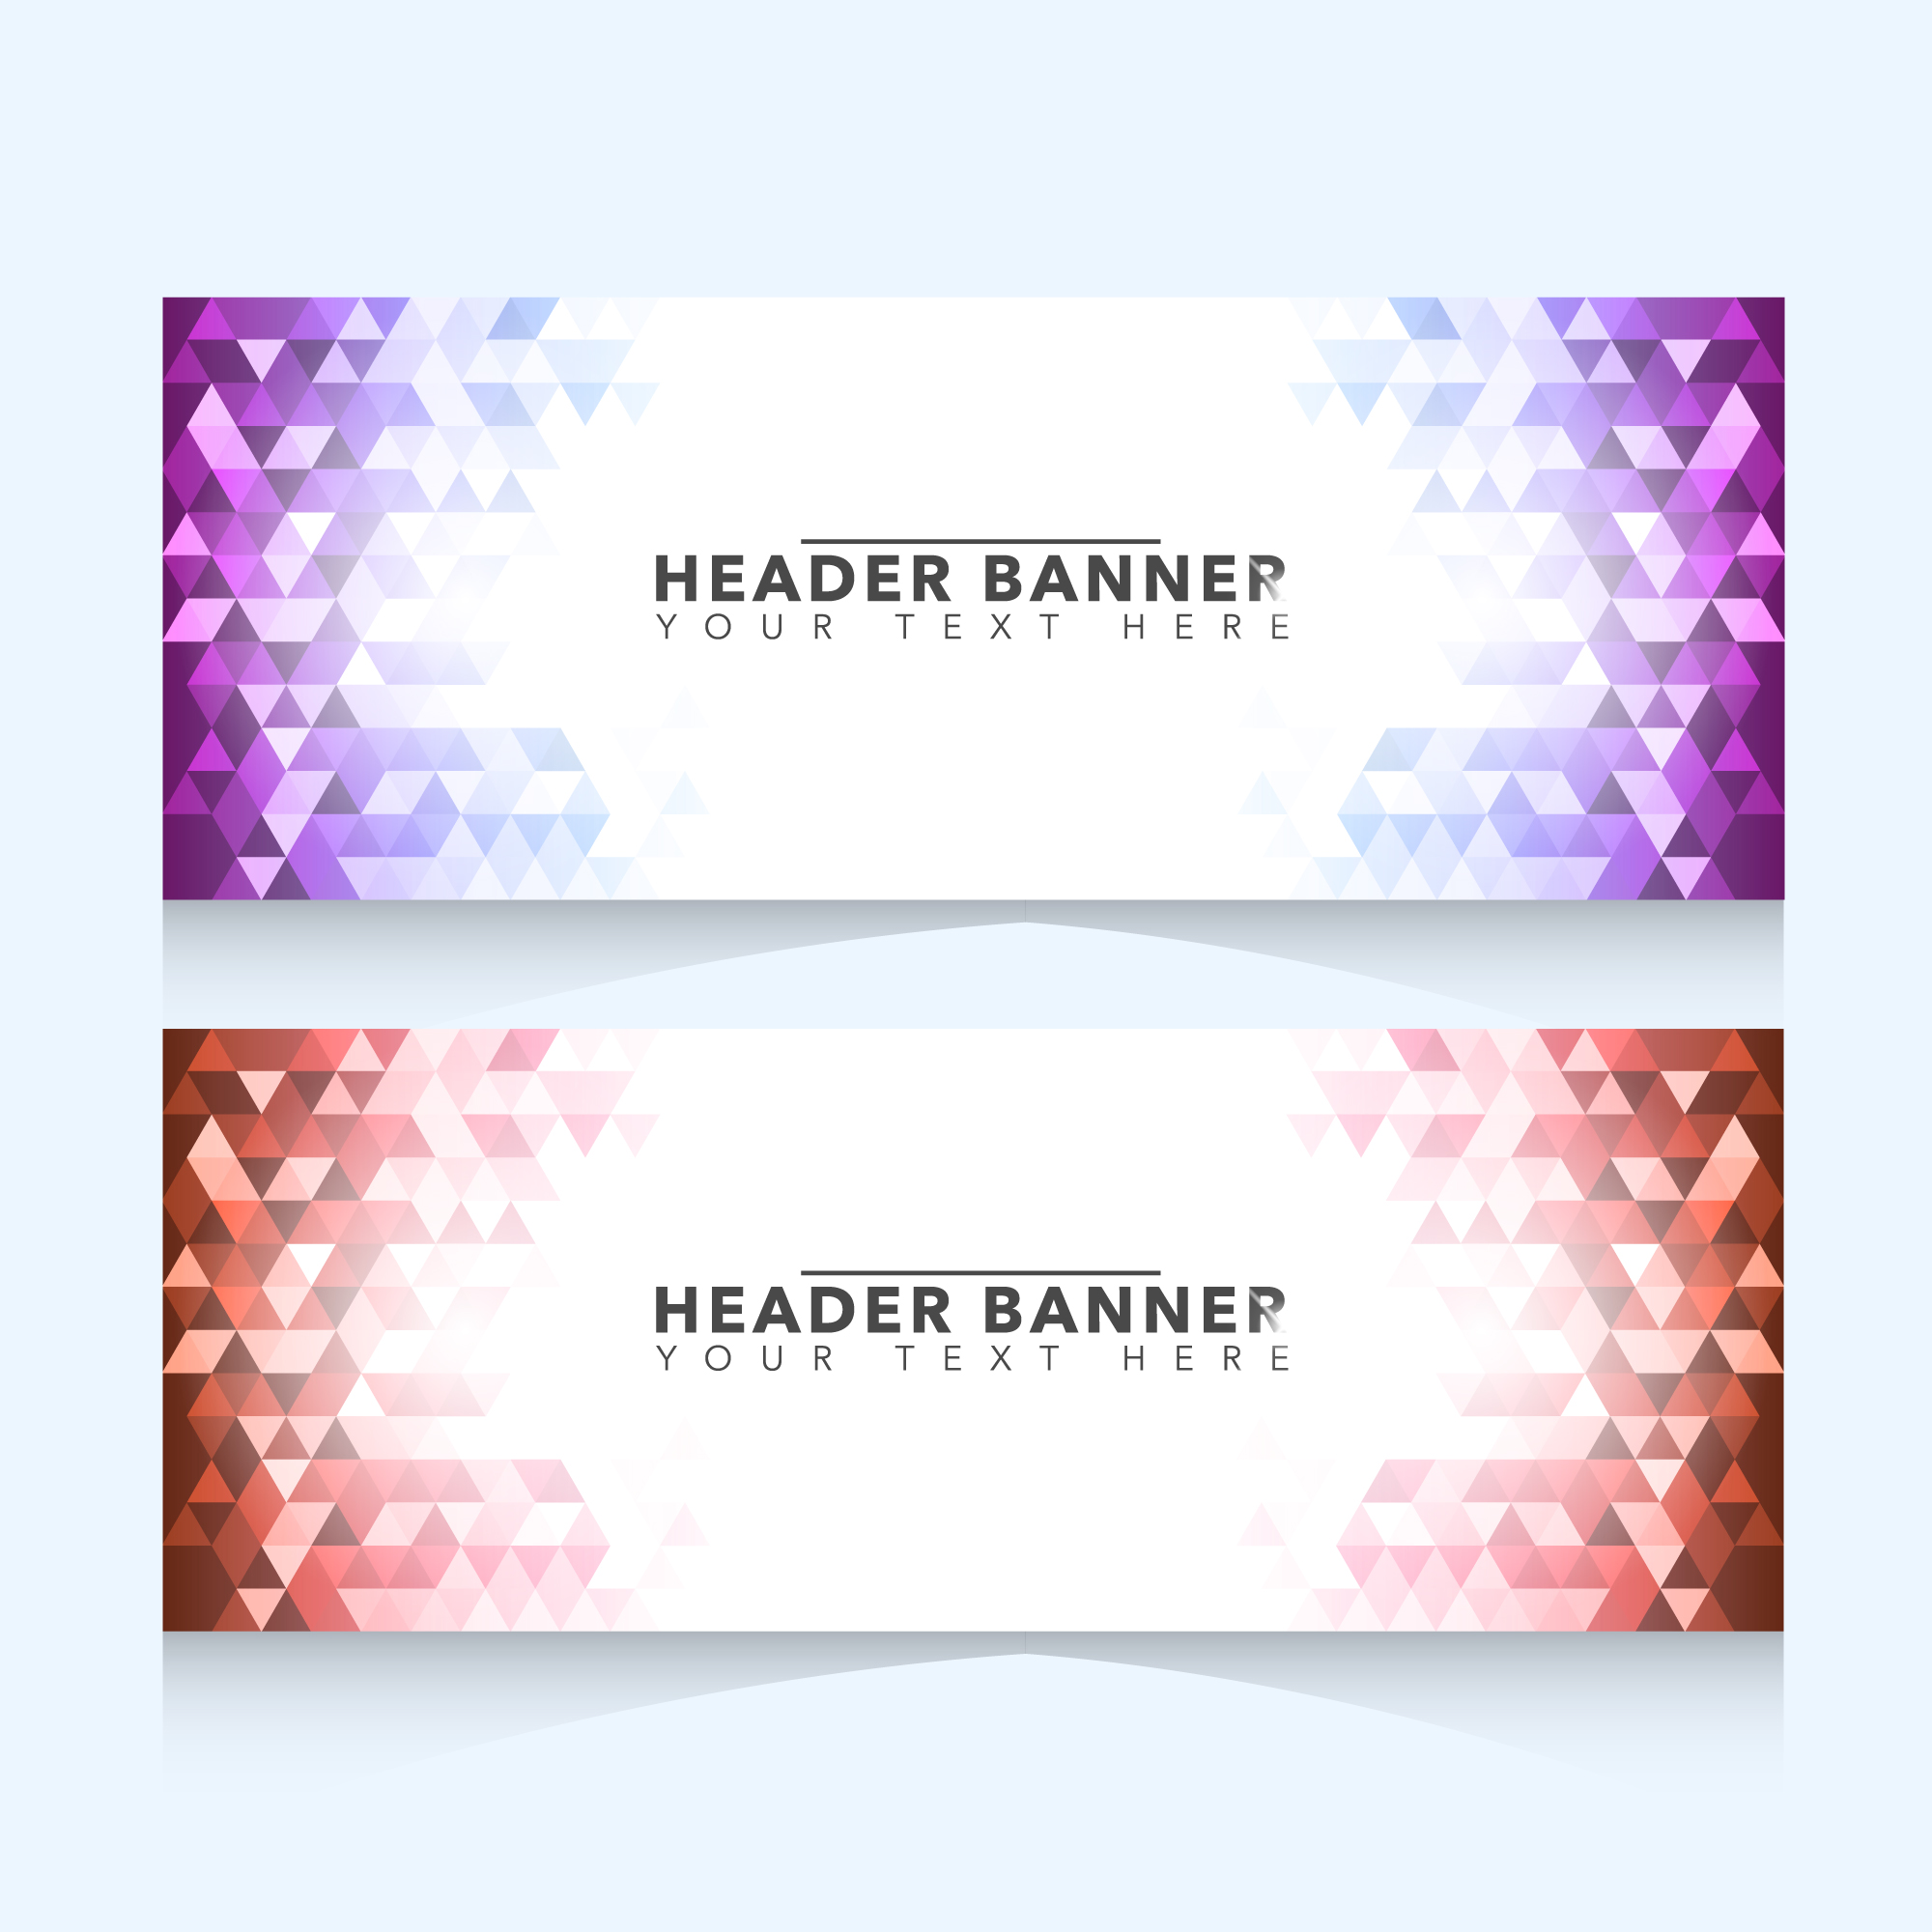 Banner with geometric design